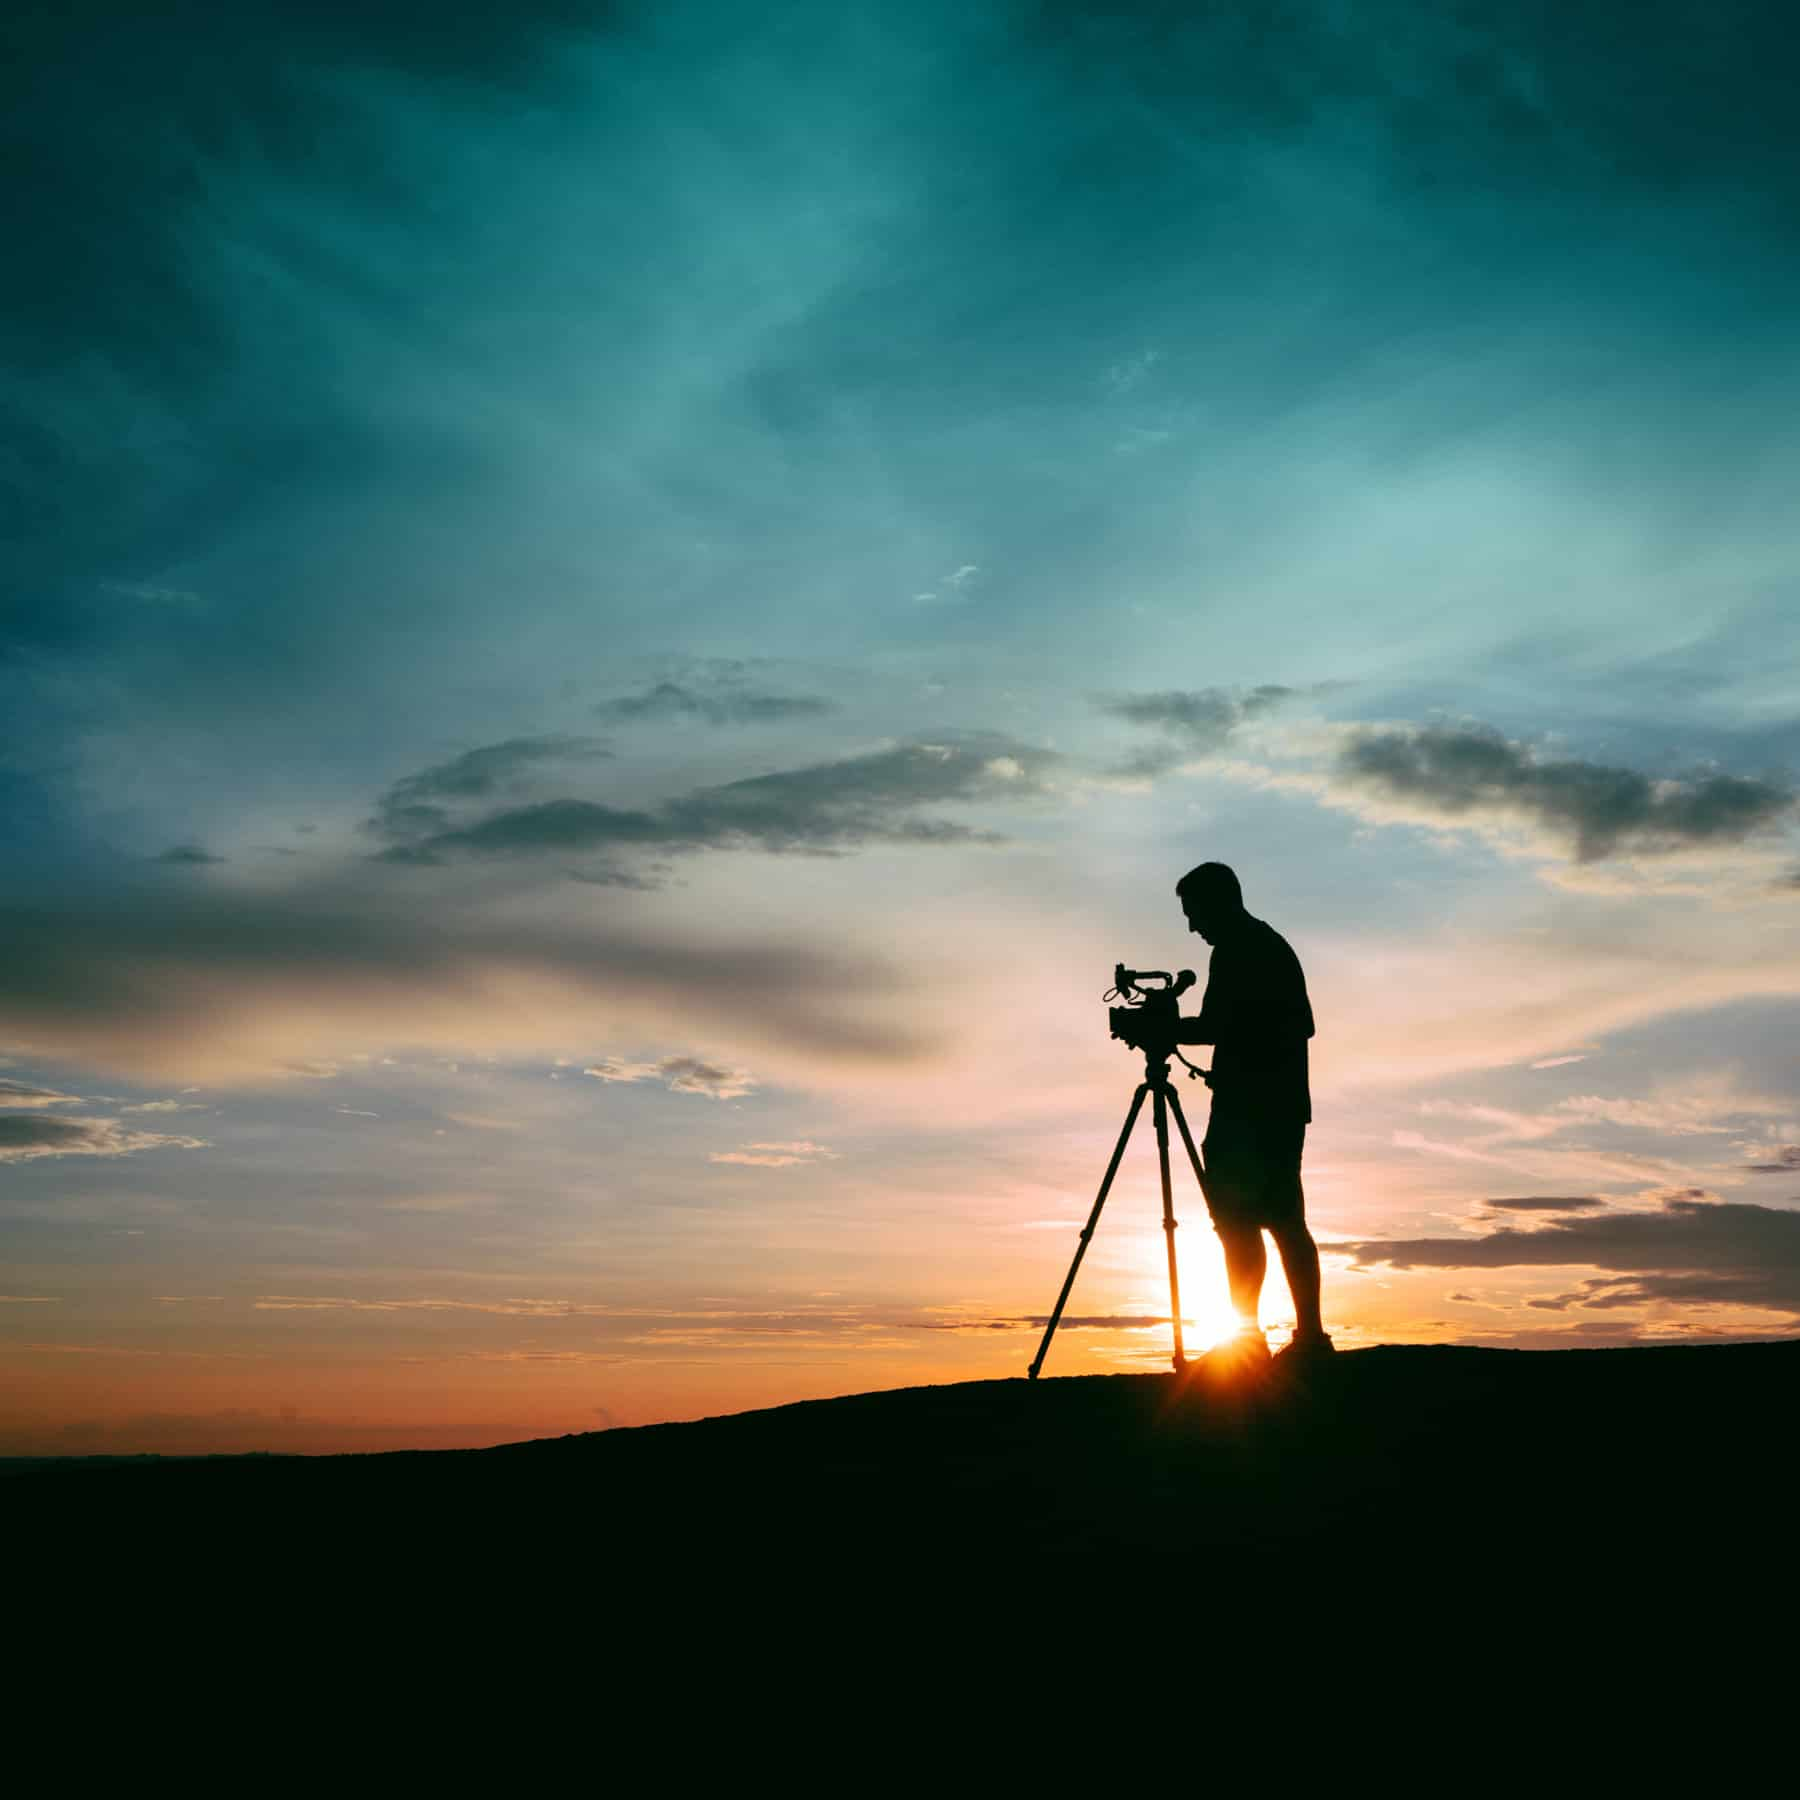 A man in silhouette setting up a camera, with the sun setting behind him.